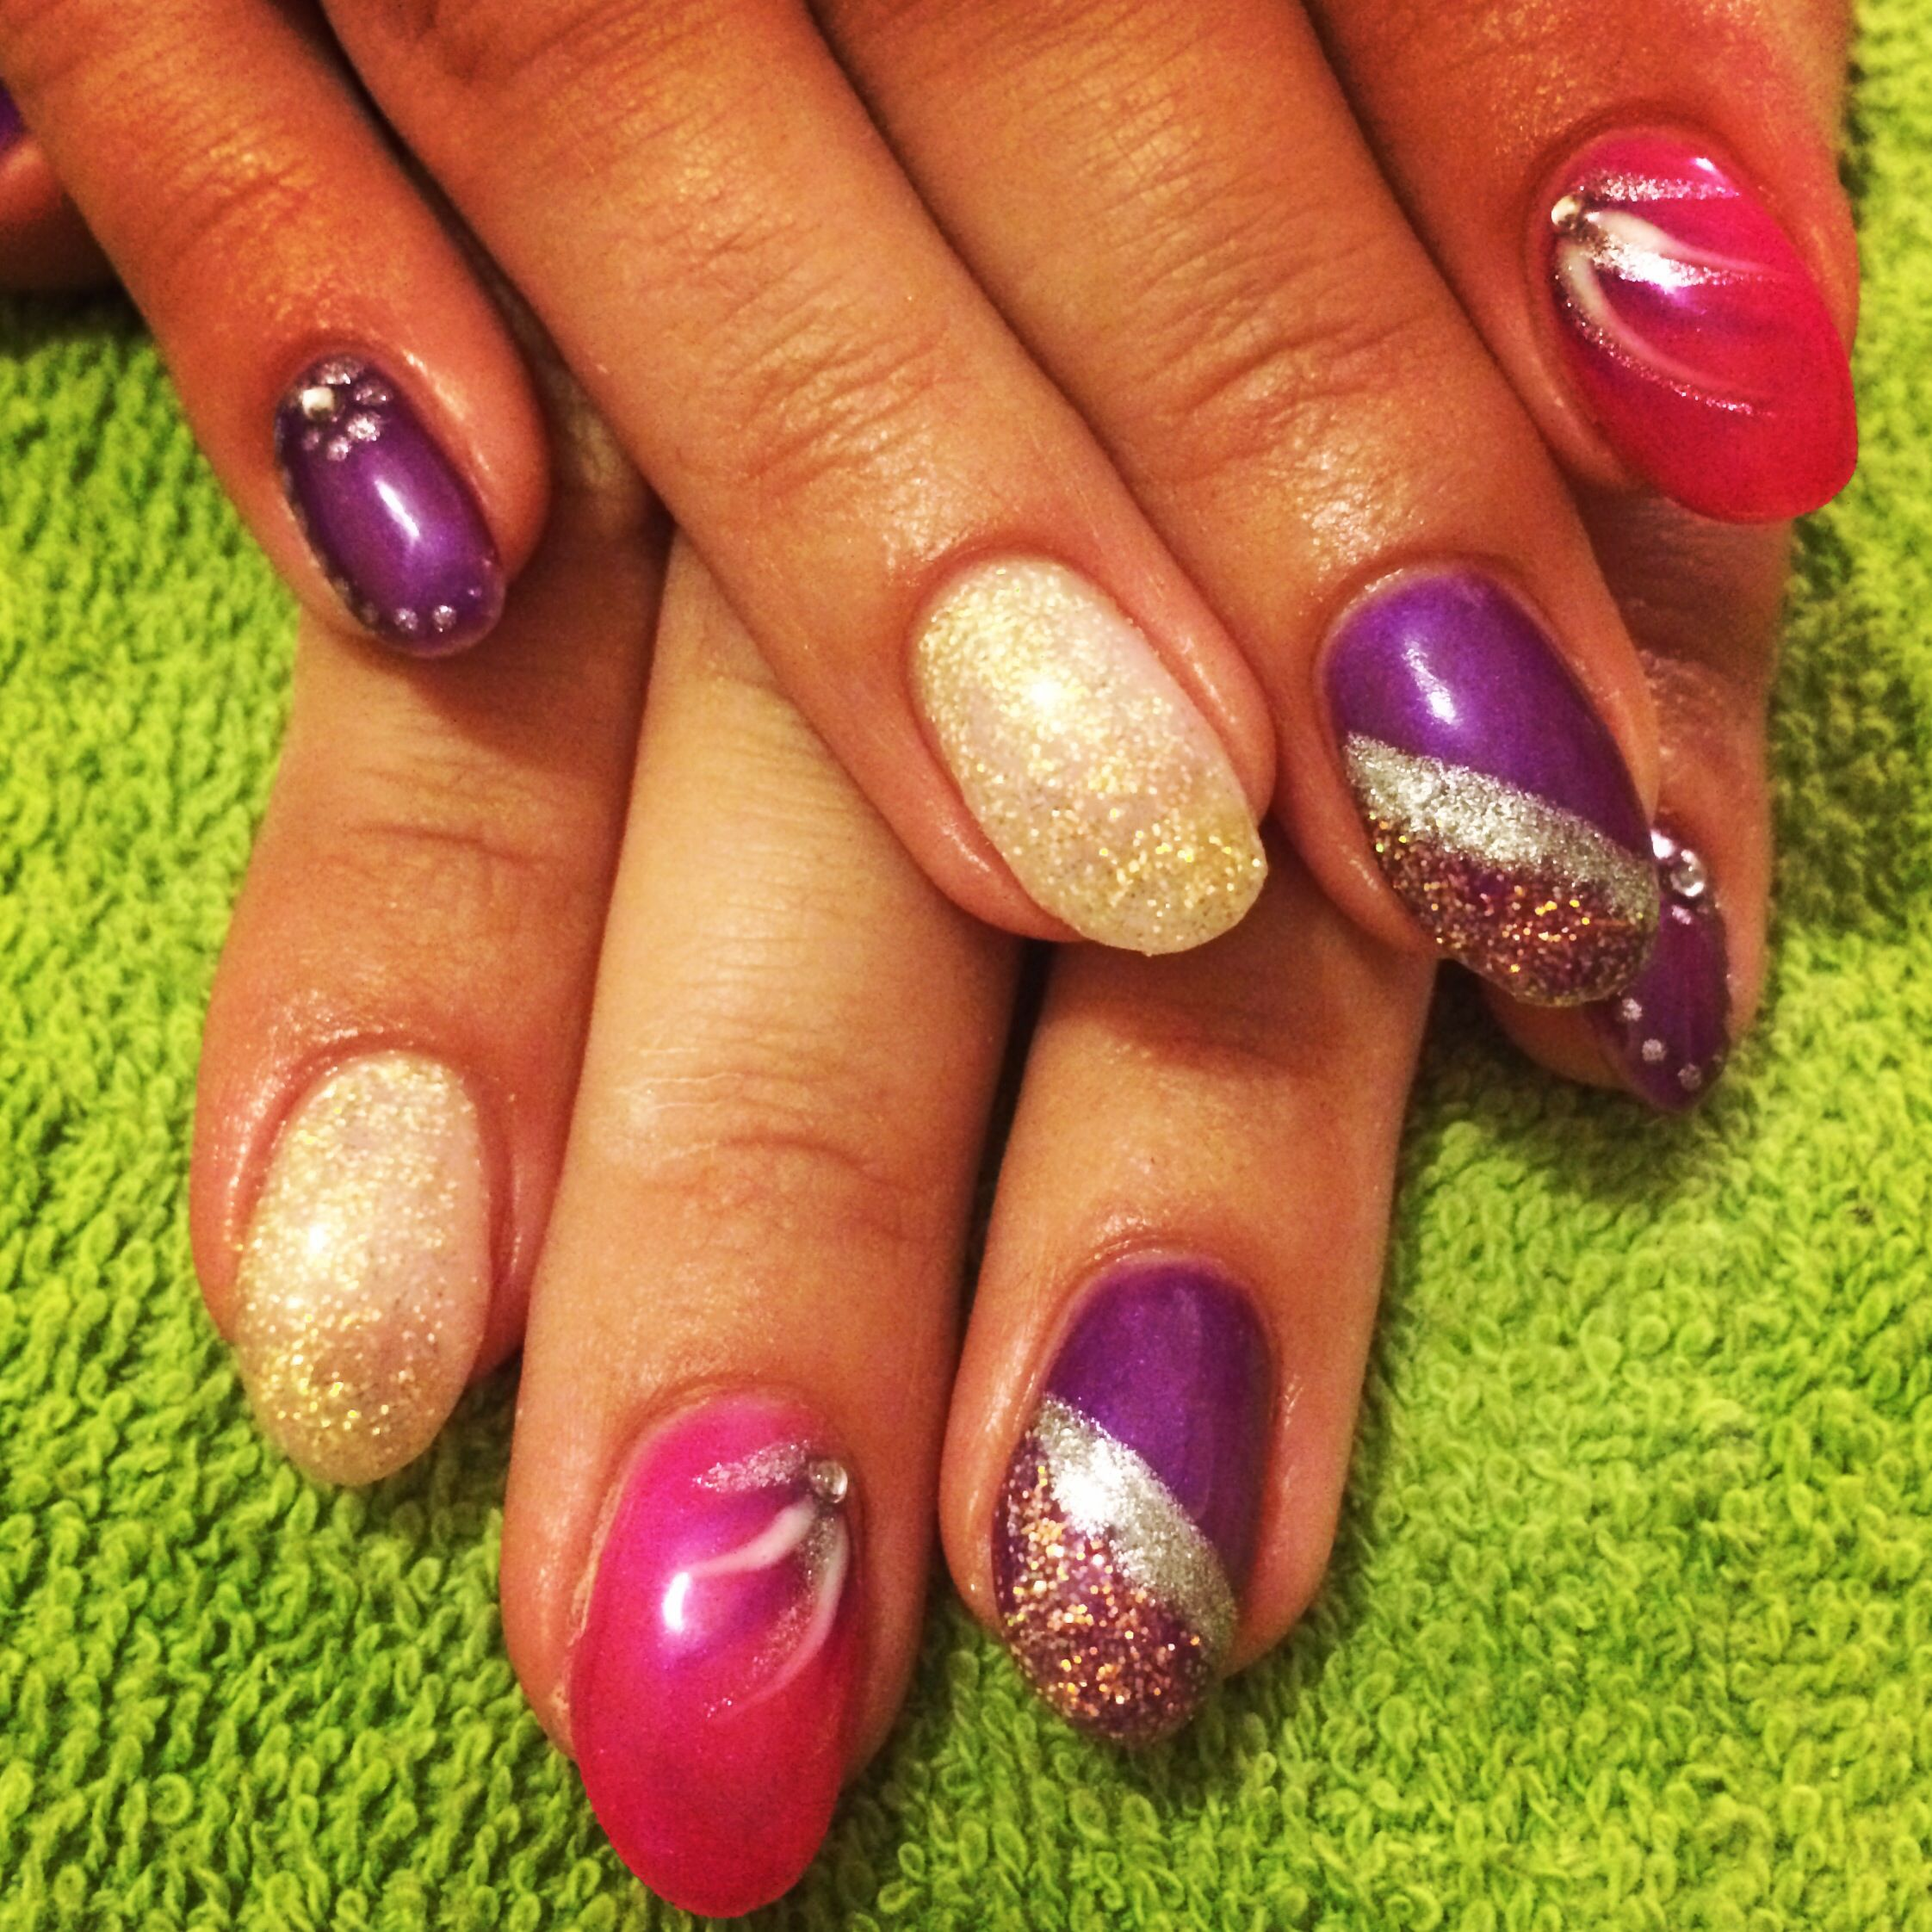 Pink purple and glitter gel polish gel nails with nail art and diamantés